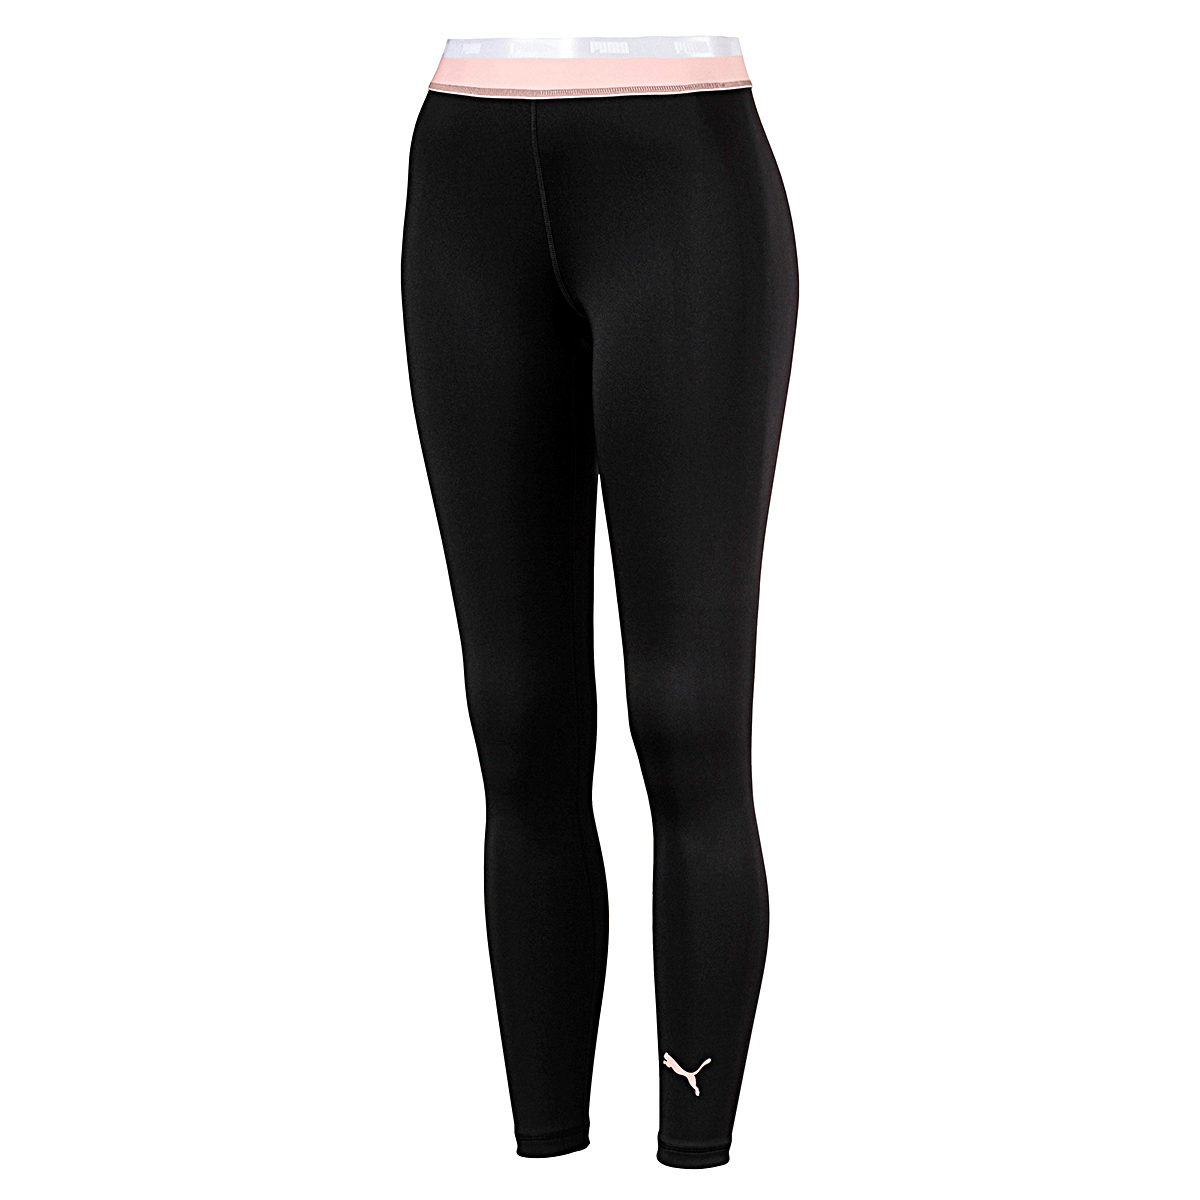 Hosen - PUMA Damen Soft Sports Leggings Pant Hose Pants Fitnesshose schwarz 843682 L  - Onlineshop Sneakerprofi